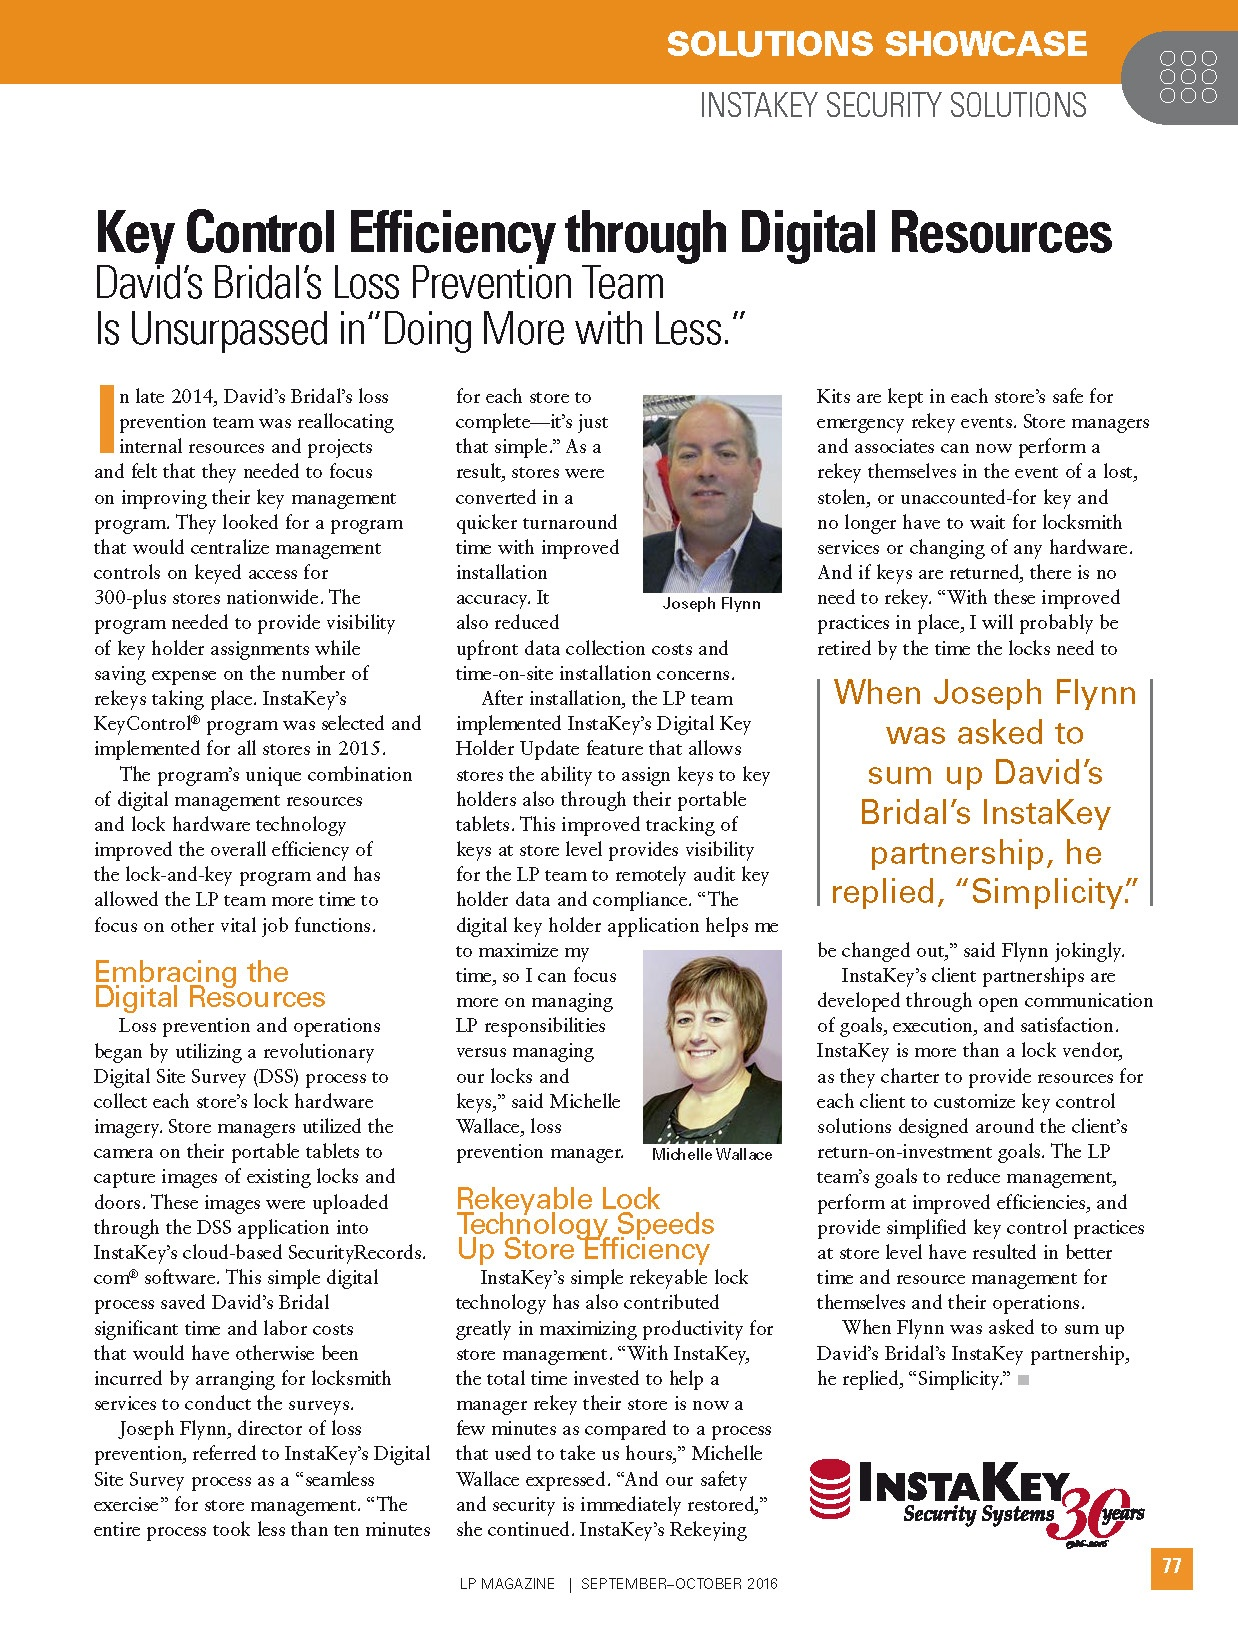 Key Control Efficiency Through Digital Resources